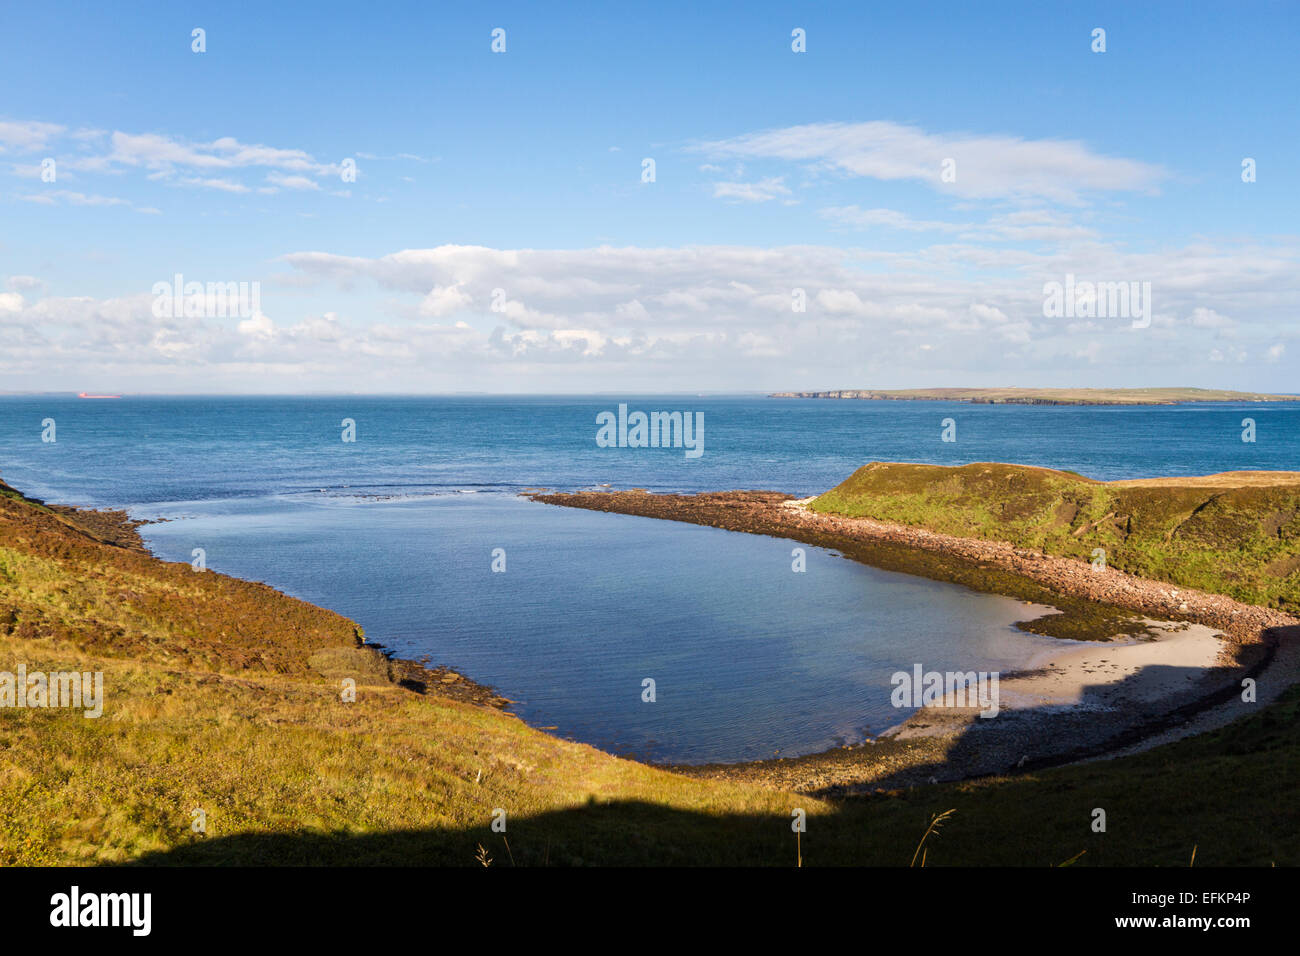 Scotland's Haven Bay, Caithness - Stock Image